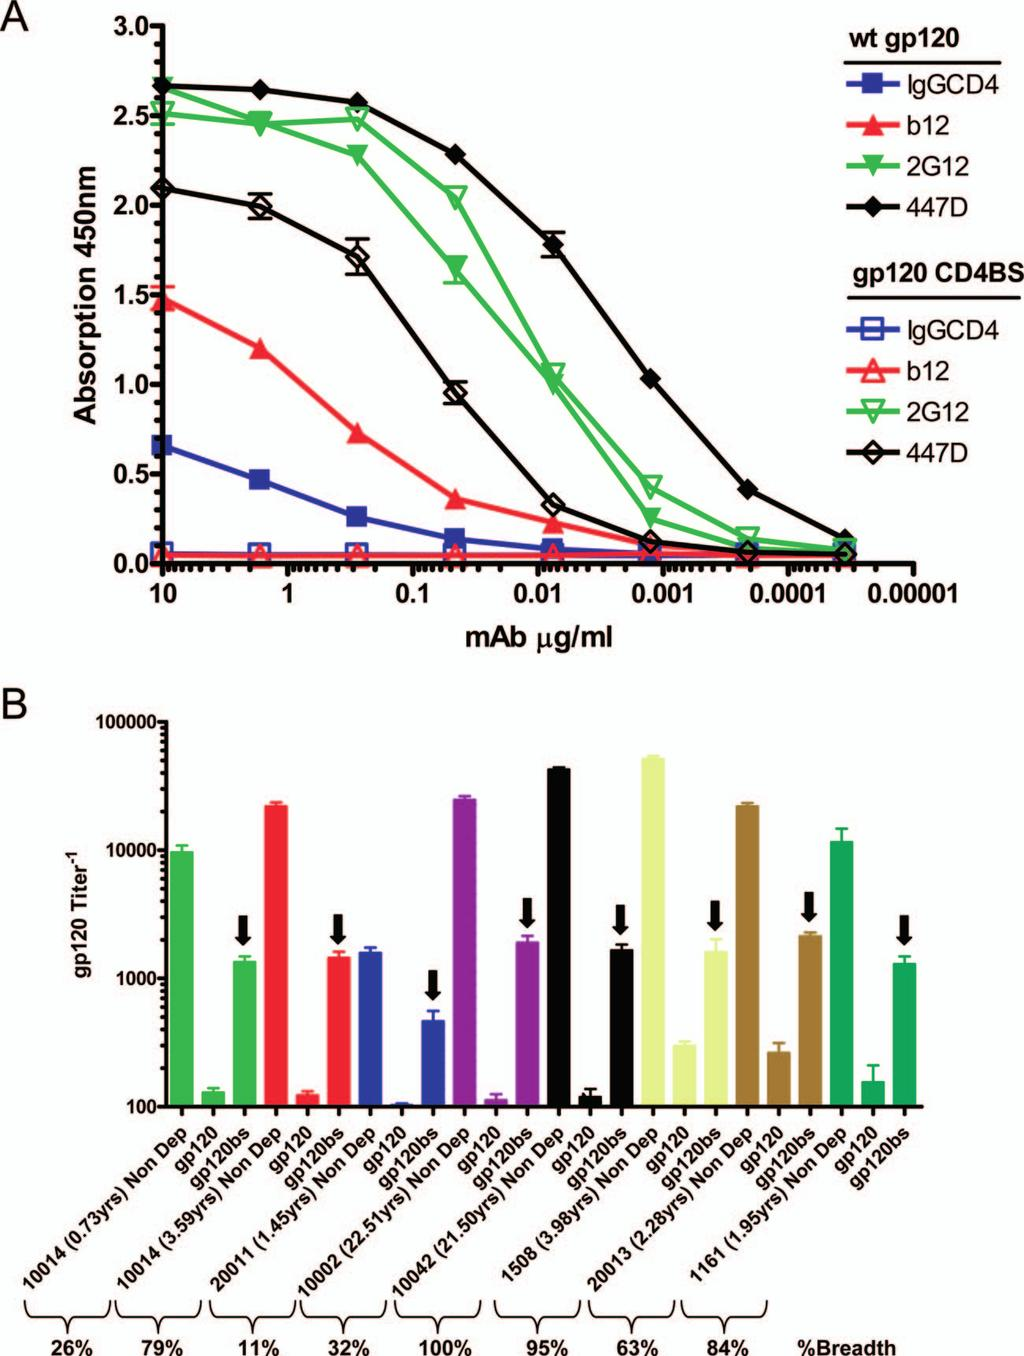 VOL. 83, 2009 CROSS-REACTIVE NAbs IN HIV-1 INFECTION 767 FIG. 7. Detection of anti-cd4-bs antibodies in HIV plasmas. (A) Recognition of WT gp120 and CD4-BS mutant gp120 by specific anti-gp120 MAbs.